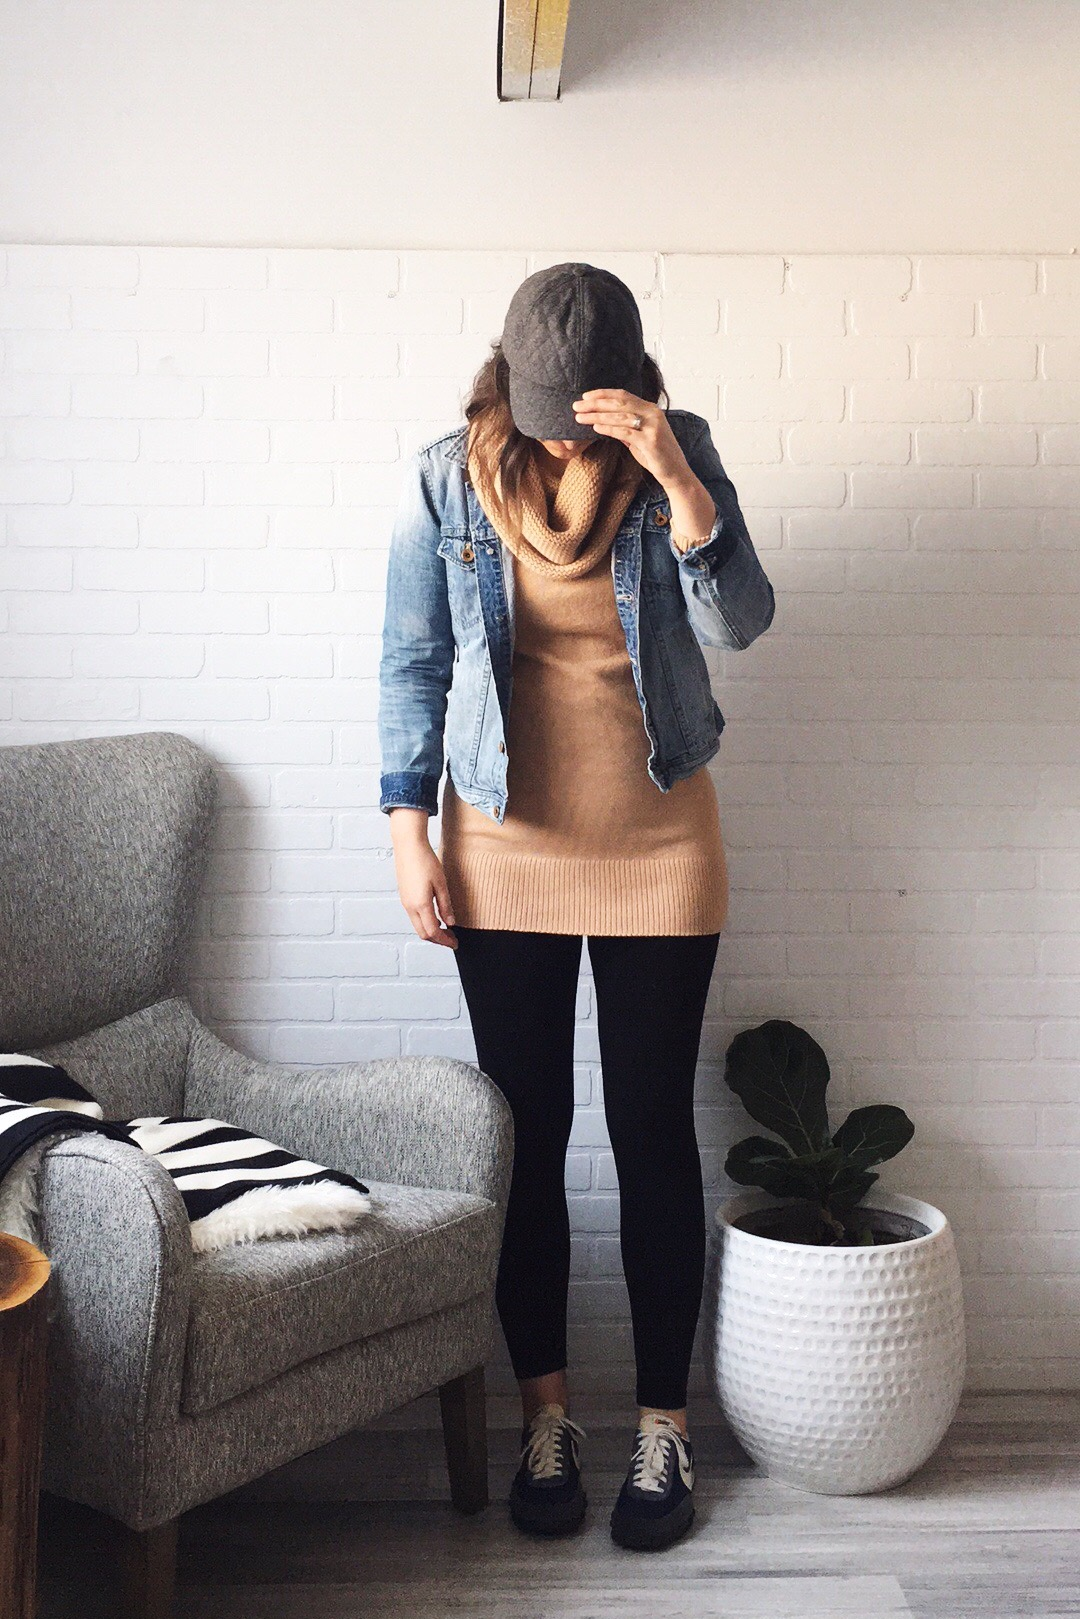 hat: Madewell / jacket: Madewell ( similar ) / sweater: H&M / leggings:  M.Rena  via  Mainstream Boutique  / shoes:  J.Crew